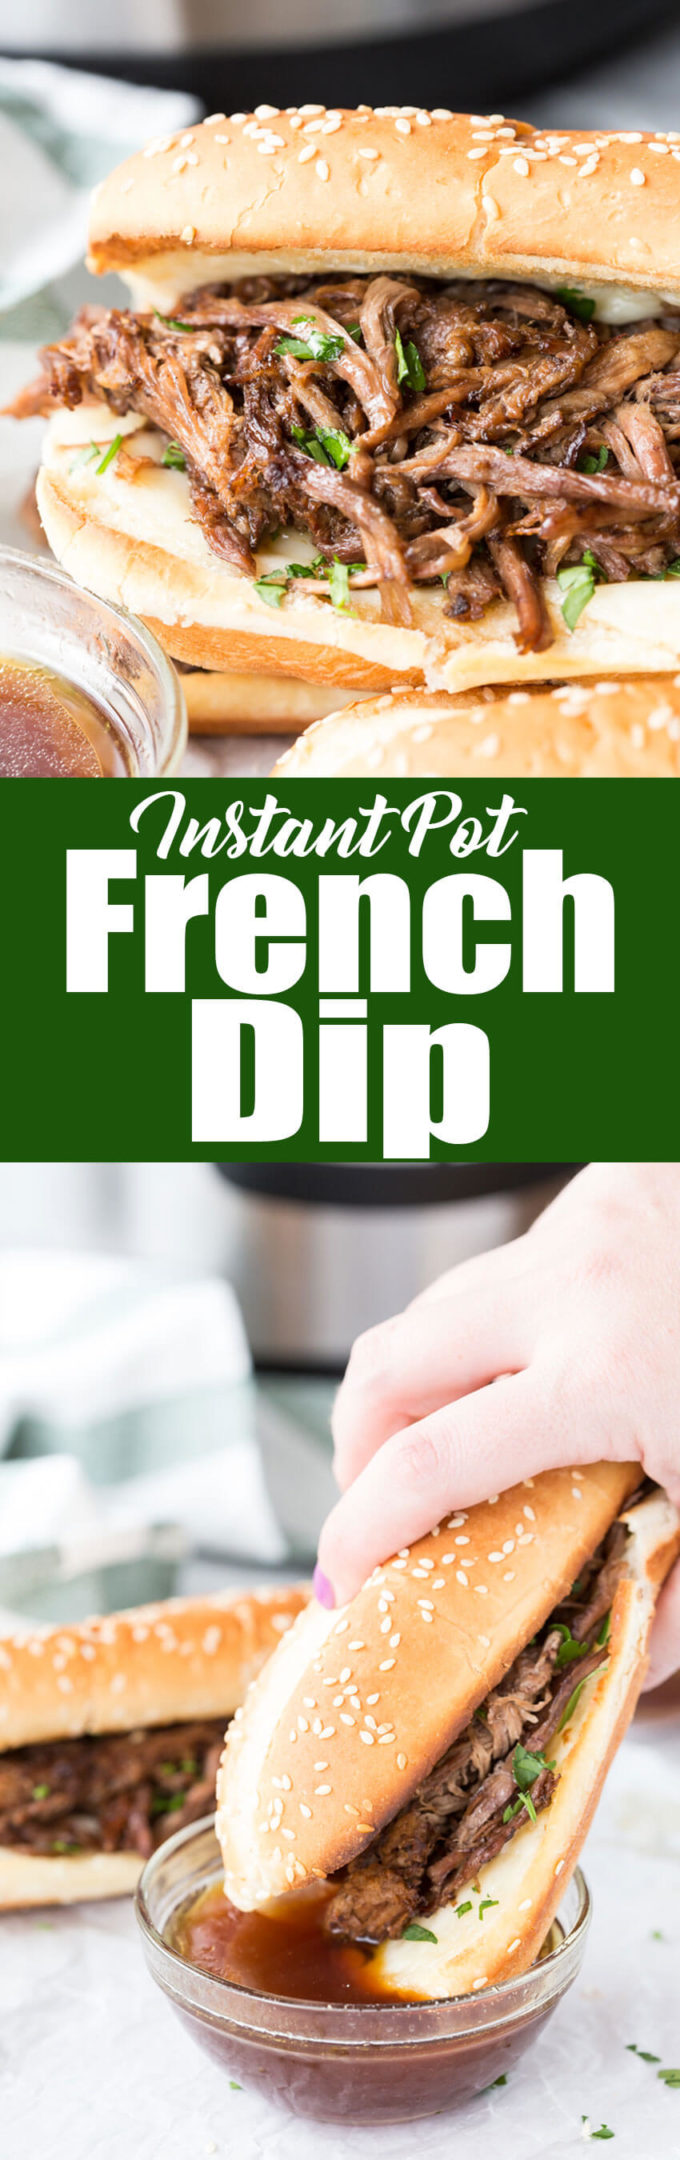 Instant Pot French Dip: Decadent and flavorful french dip sandwiches made in the Instant Pot pressure cooker for a quick and flavorful meal.